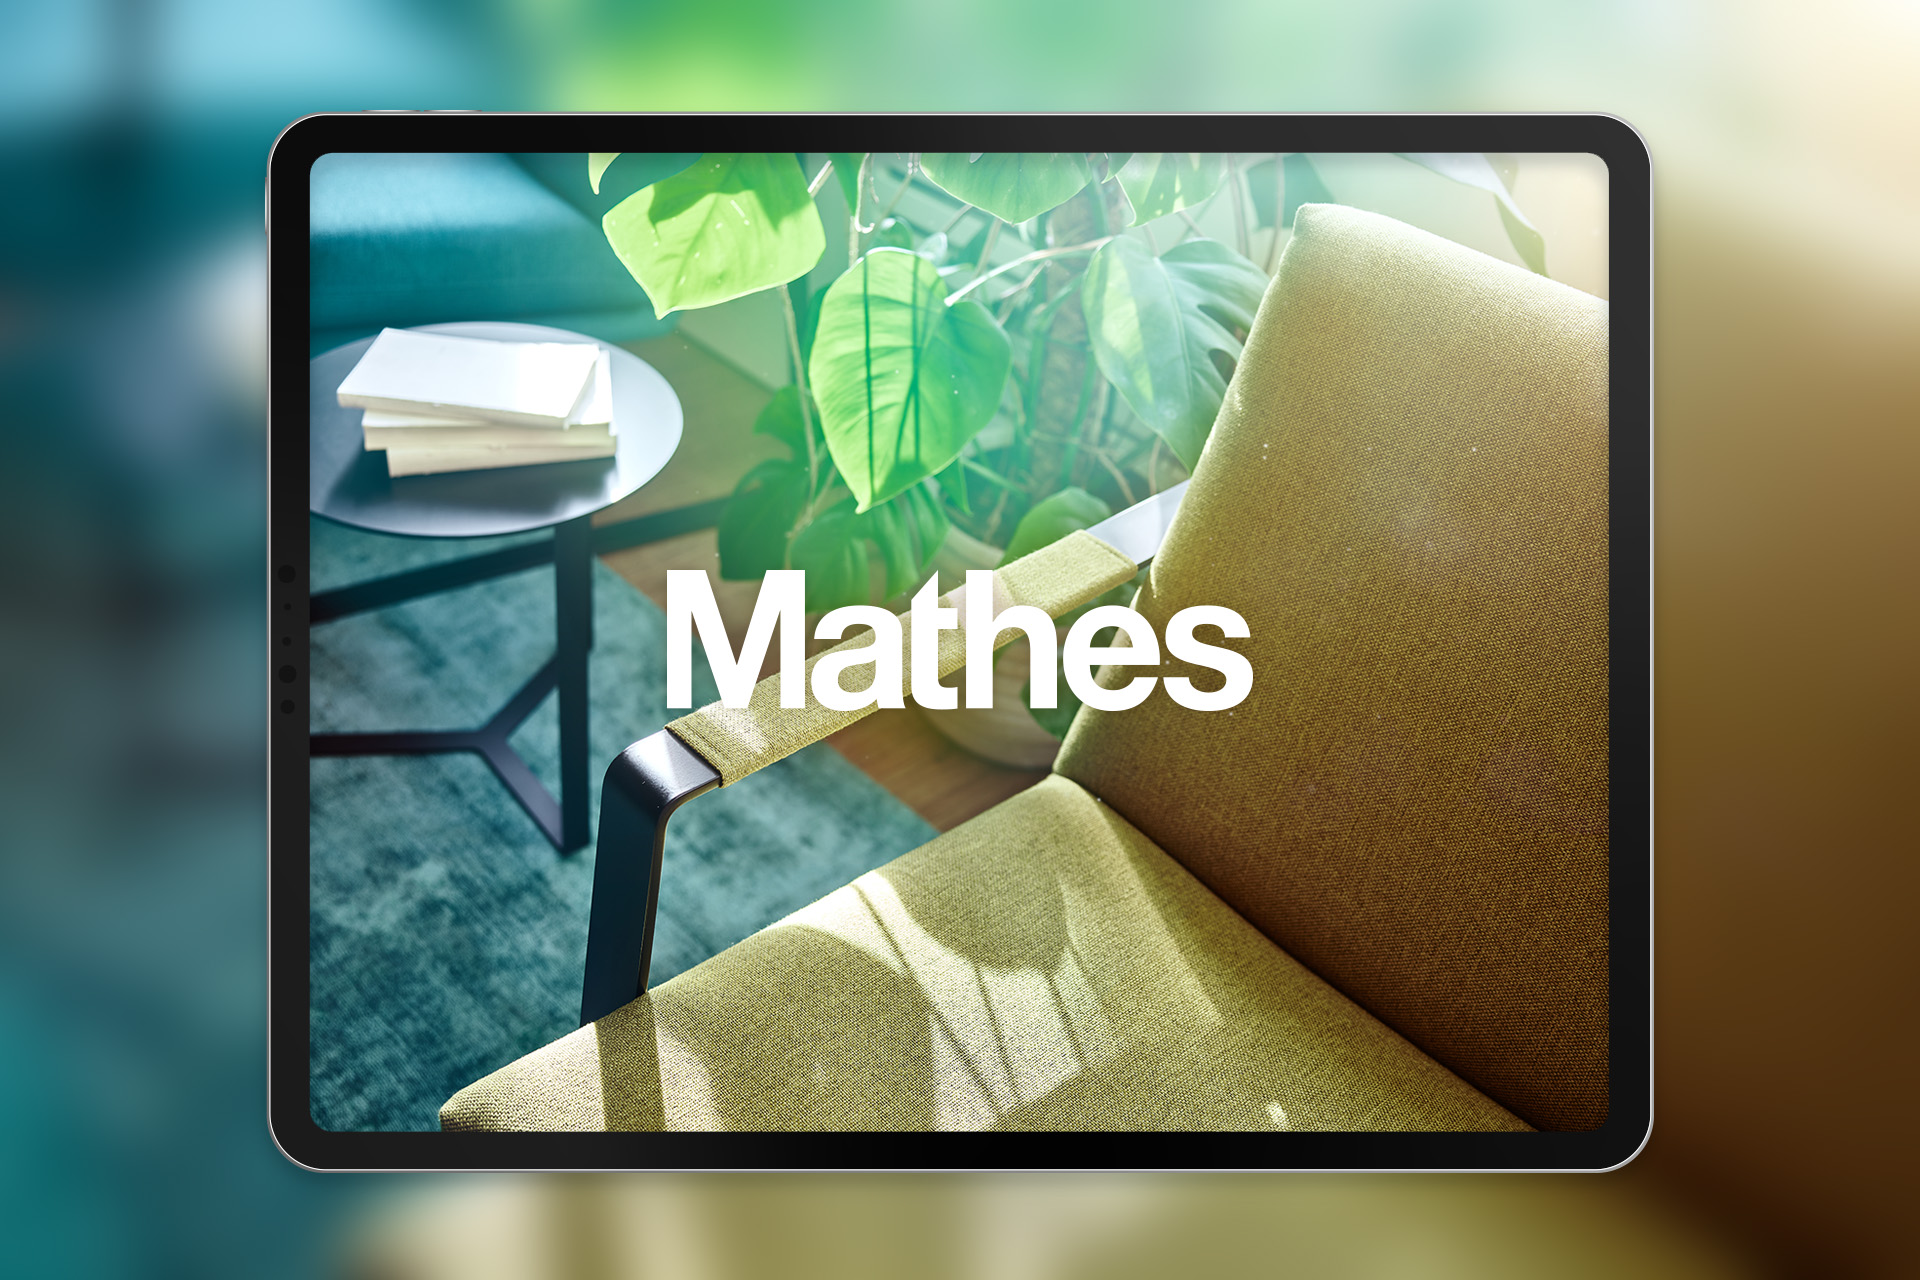 Website_Mathes_Teaser